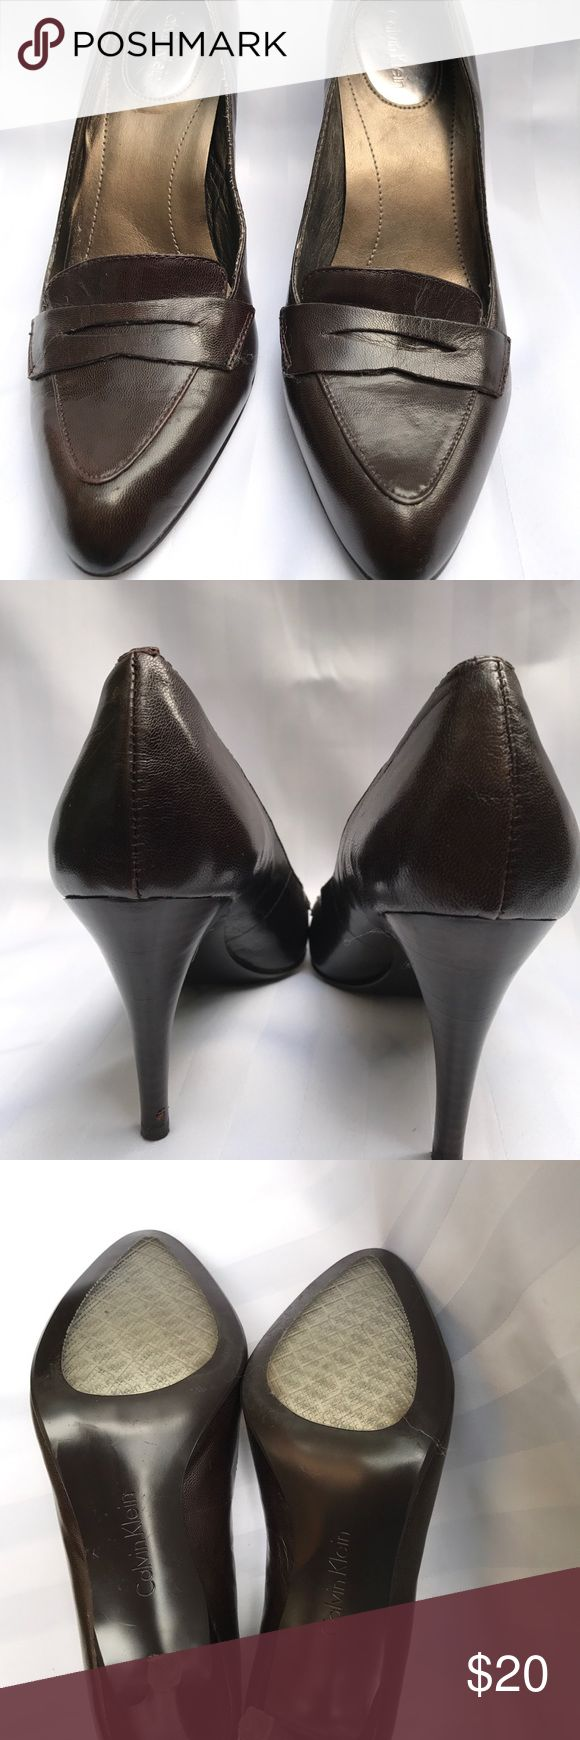 """Calvin Klein """"Cybil"""" Brown Pump Women's 6.5 Calvin Klein penny loafer style high heel pump. 2.5"""" heel height. Pre-owned. Small scratch at bottom of left heel. Minor scratches from normal wear. Calvin Klein Shoes Heels"""